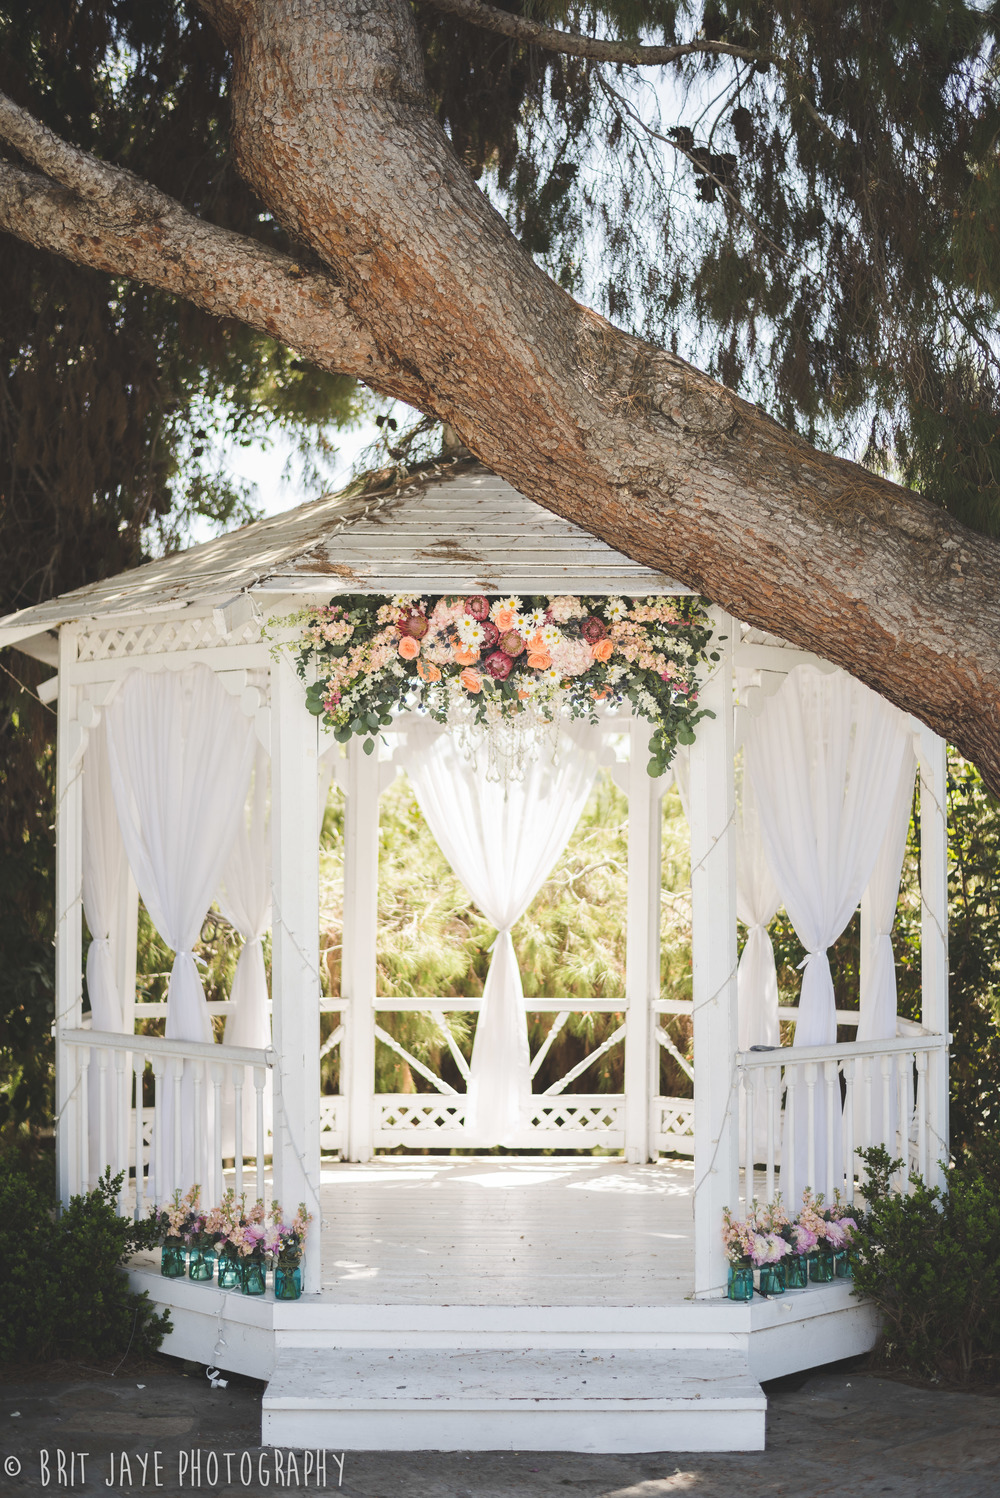 San diego wedding venues we love green gables wedding for Outdoor wedding gazebo decorating ideas